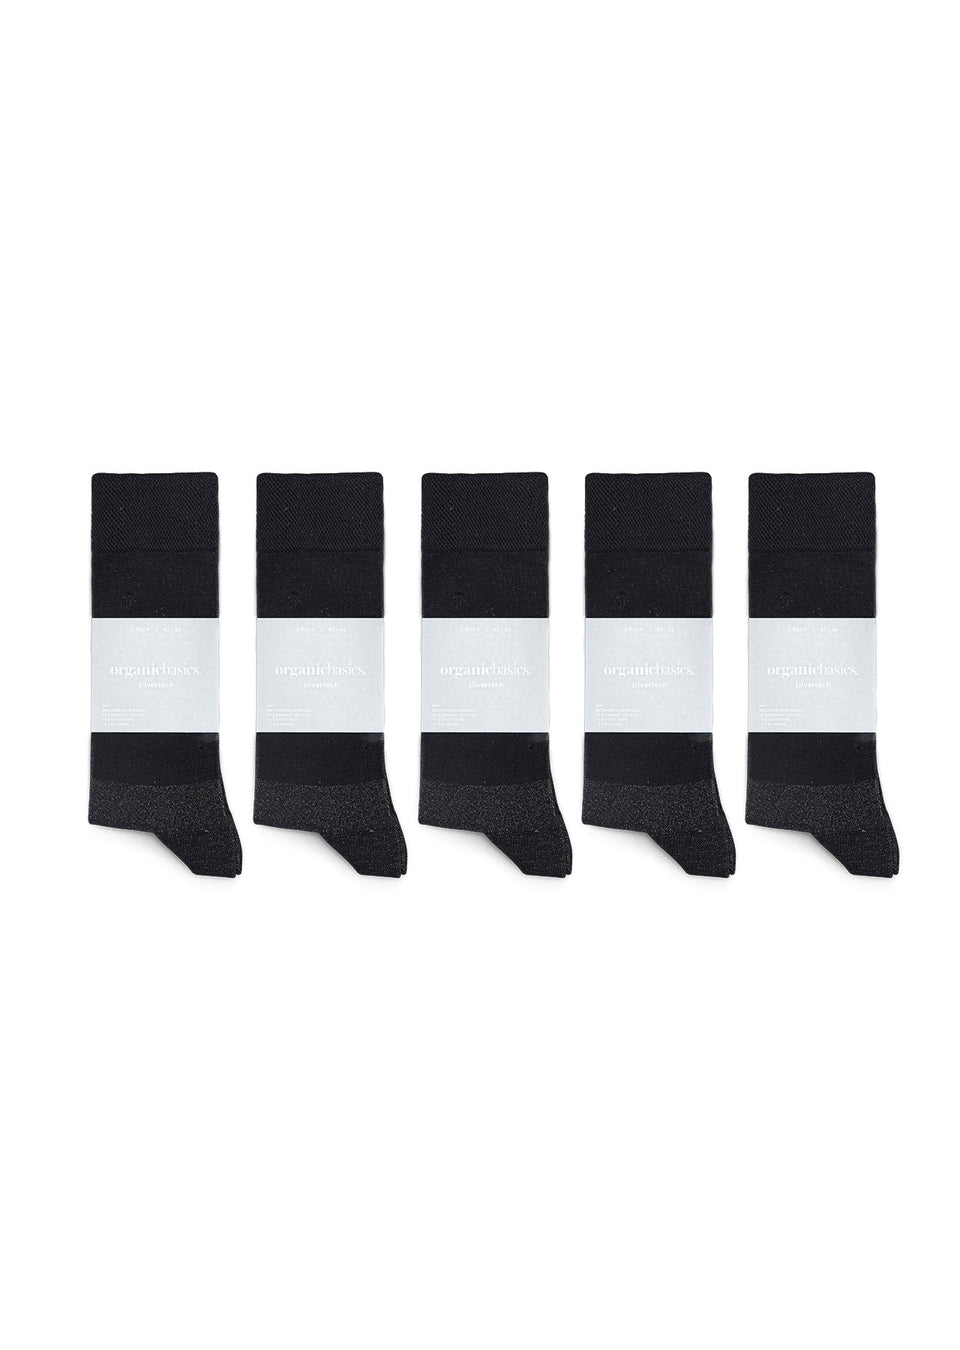 Organic Basics His SilverTech Regular Socks 10-pack